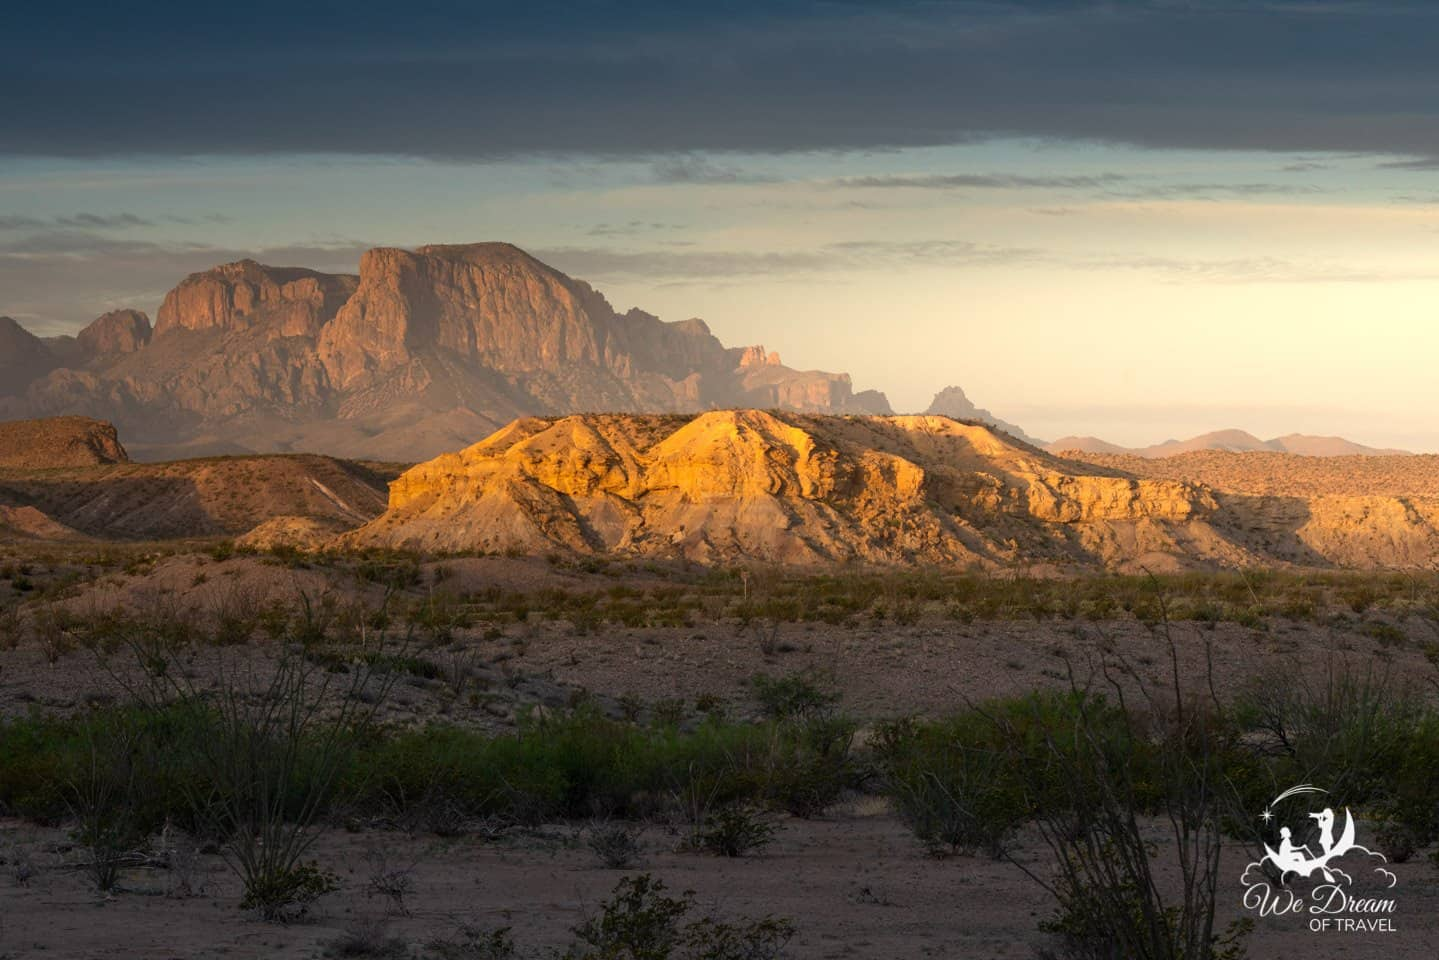 First light spills onto the scene at Exhibit Ridge in this landscape photograph of Big Bend.